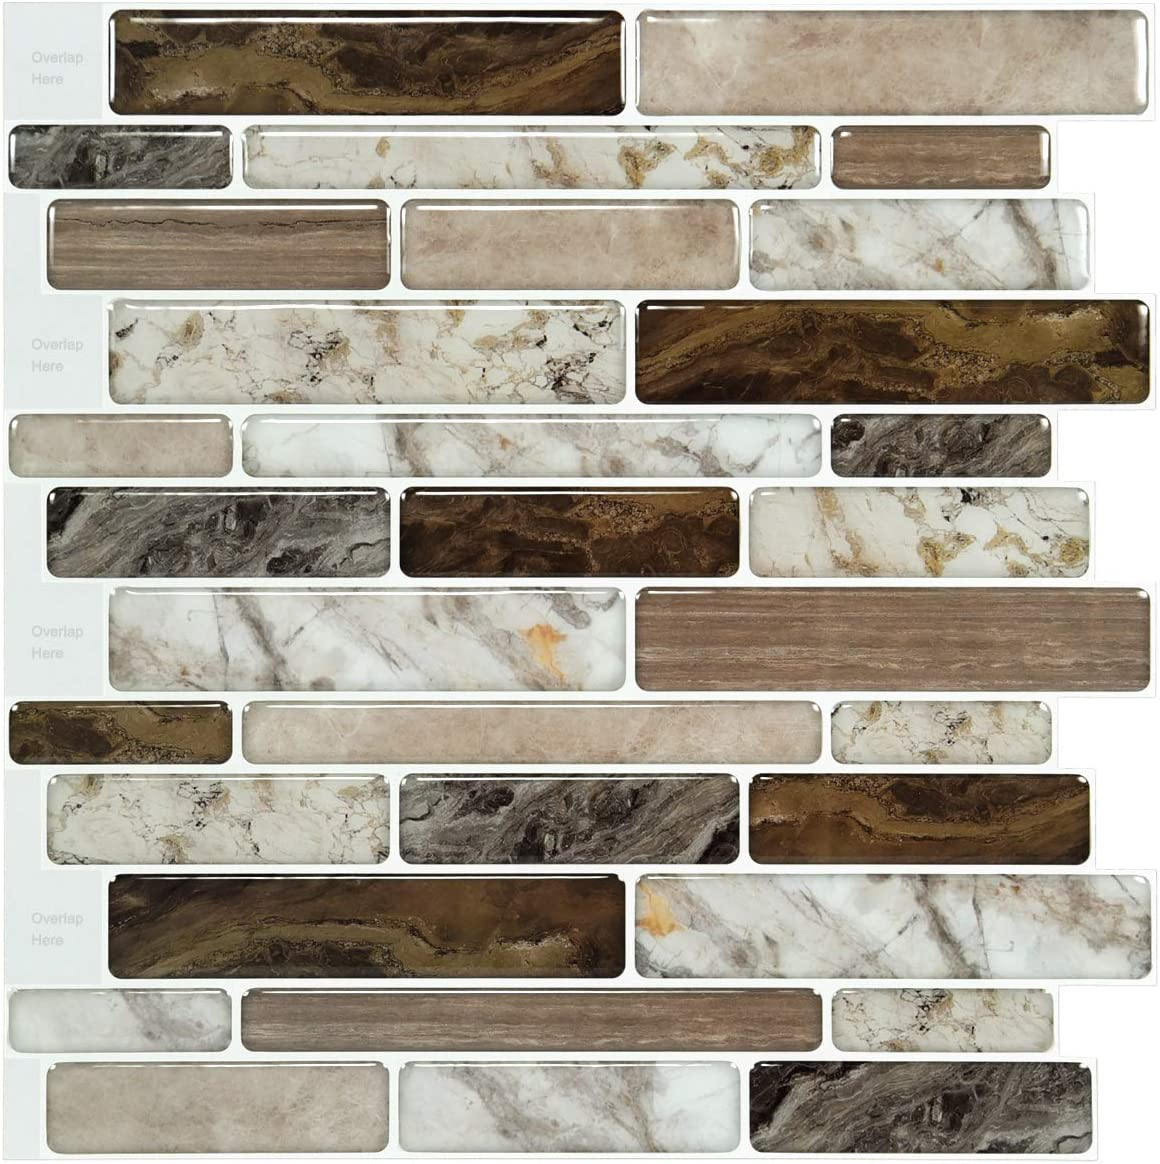 LONGKING Self-Adhesive Kitchen Backsplash, Marble Look Decorative Tiles (10 Tiles)